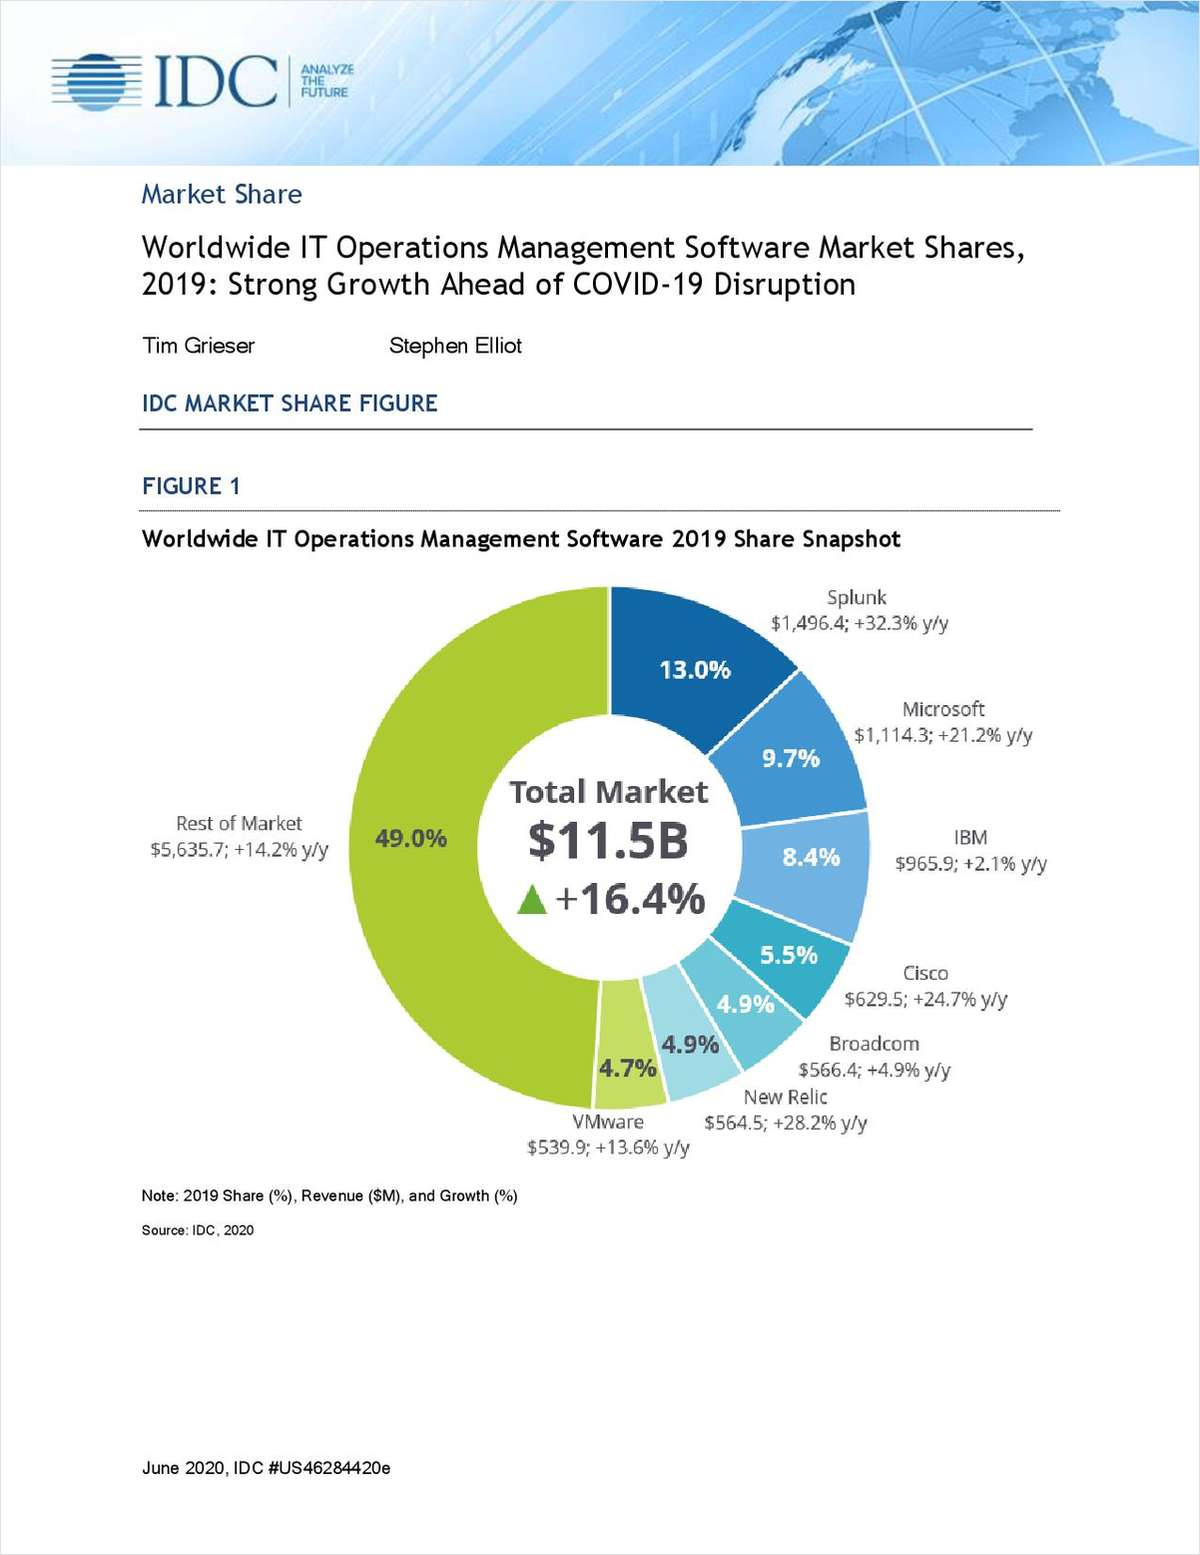 IDC Report: Worldwide IT Operations Management Software Market Shares, 2019